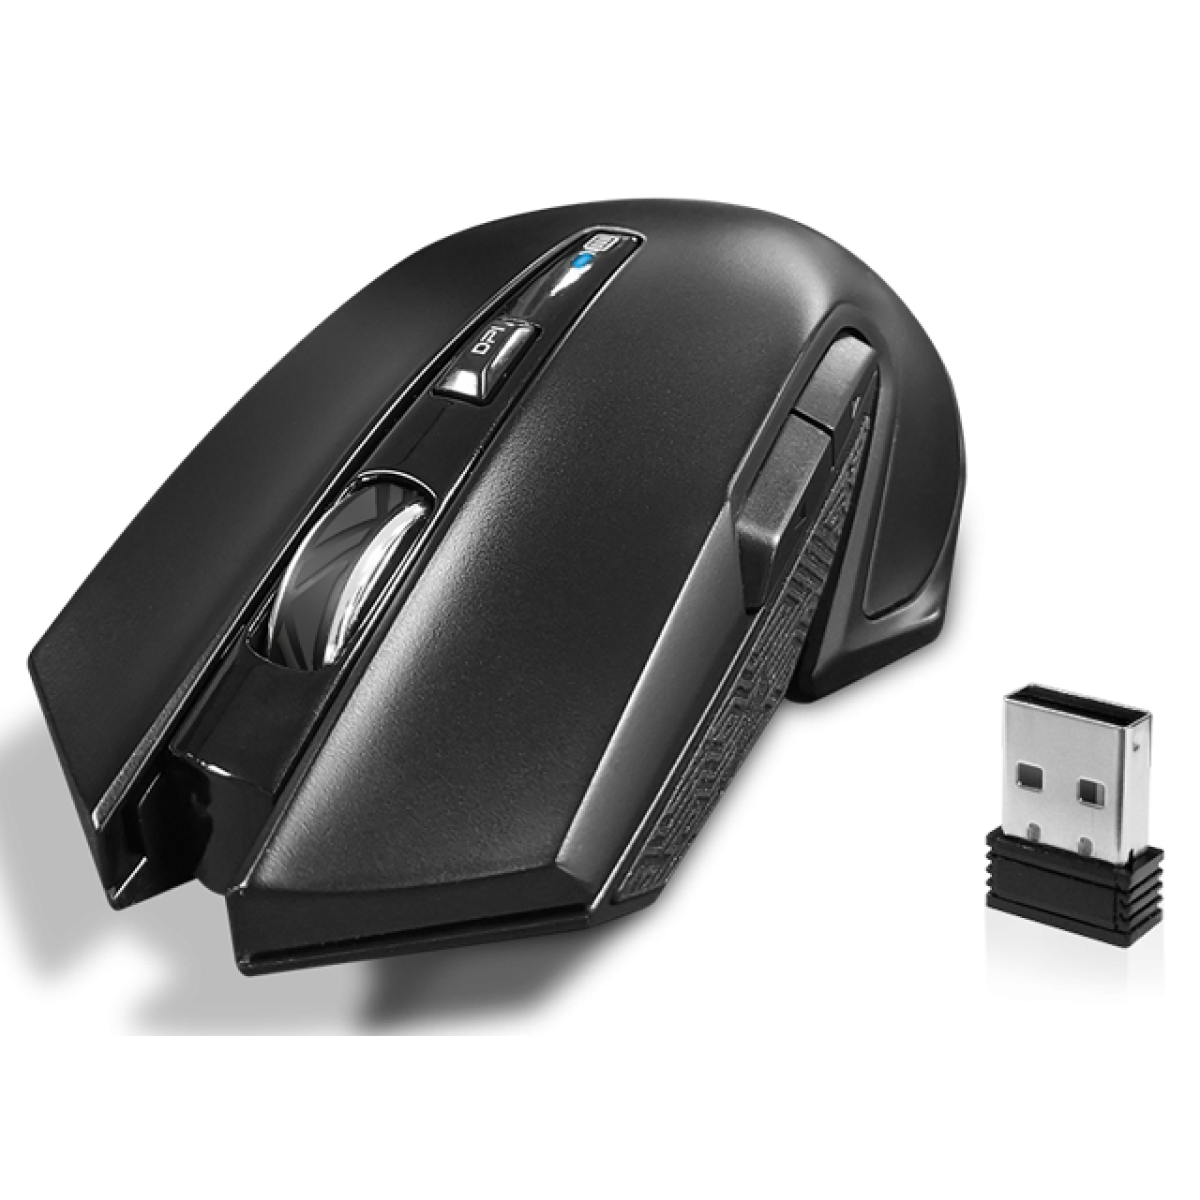 Mouse Gamer Wireless Fantech Venom WGC1, 2.400 DPI, 6 Botões, RGB, Black